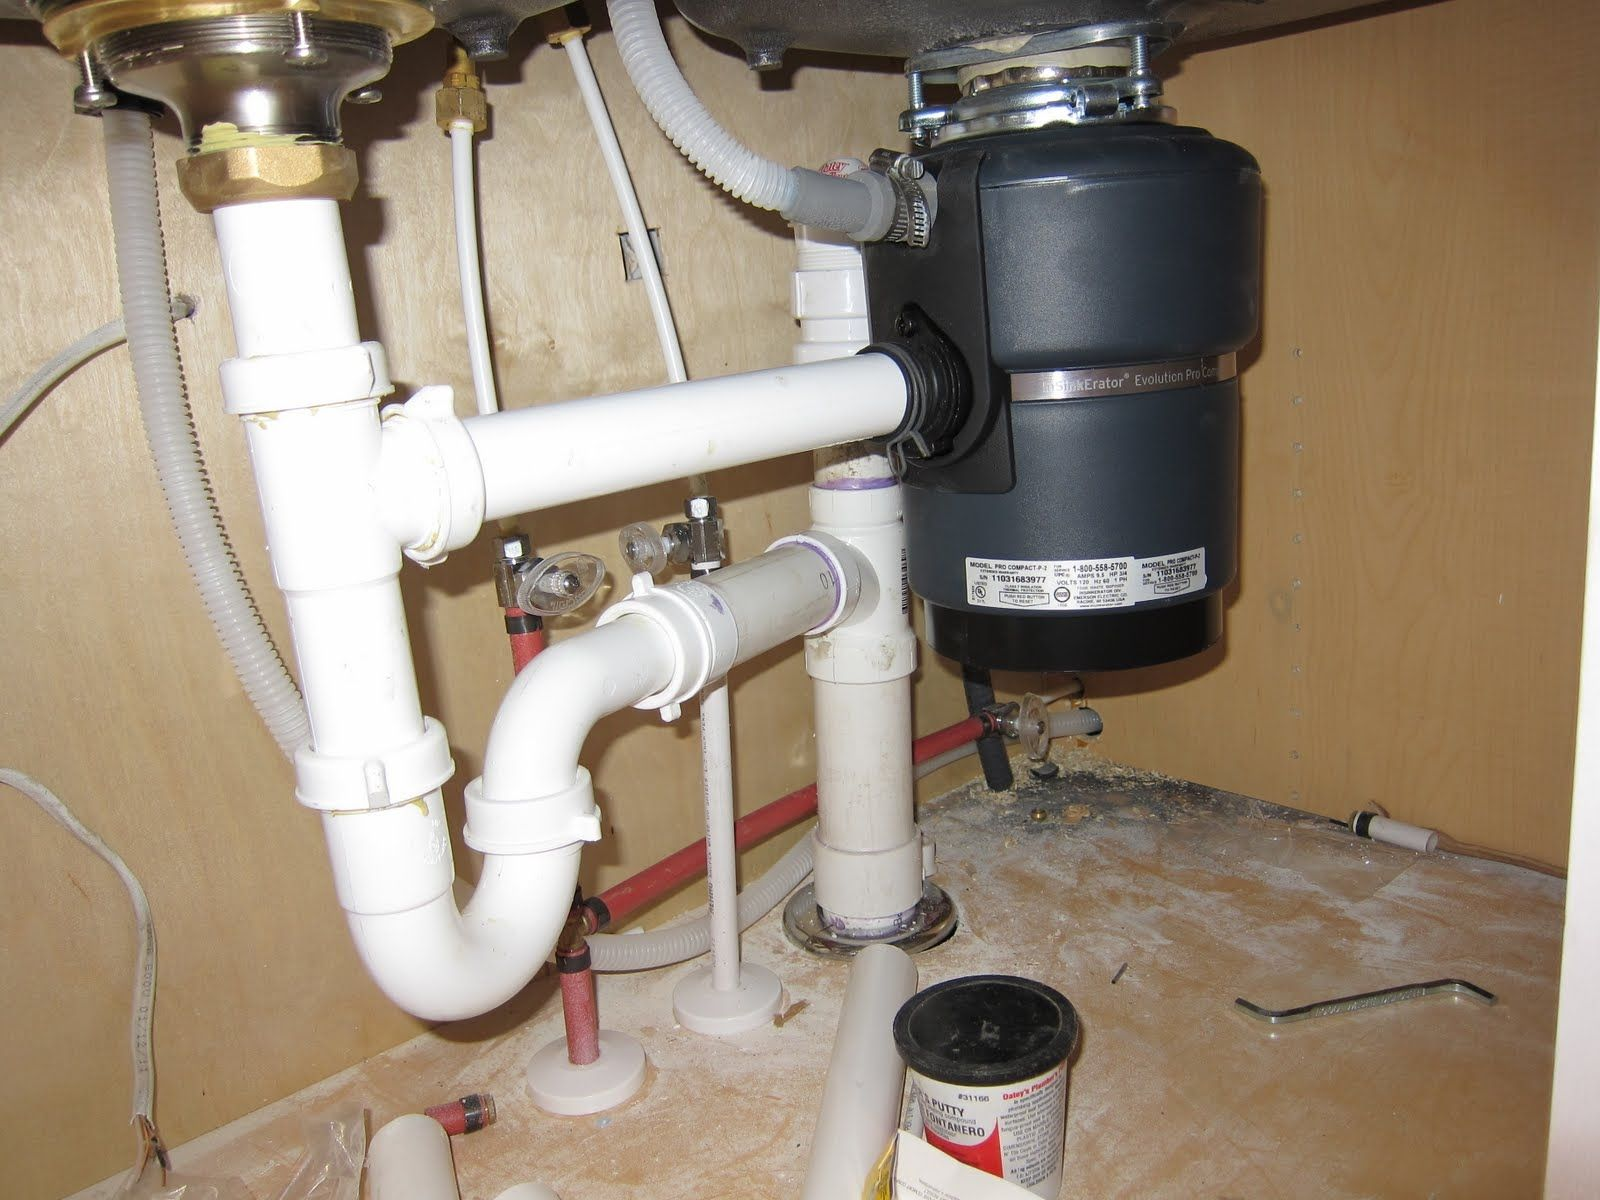 Kitchen Sink Garbage Disposal Plumbing